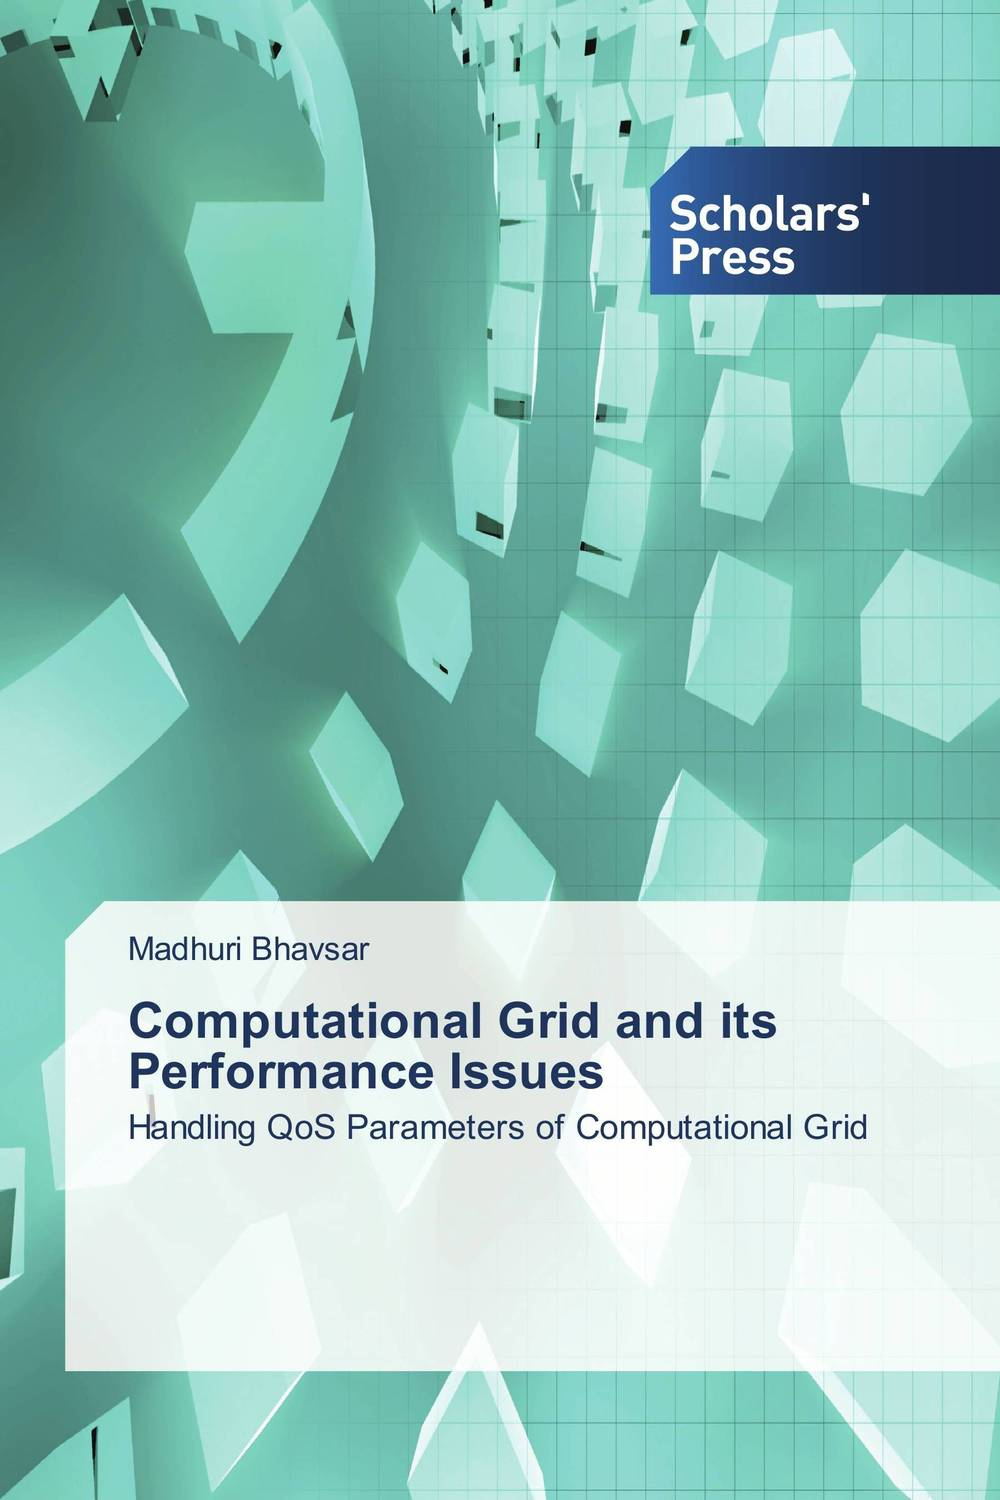 Computational Grid and its Performance Issues